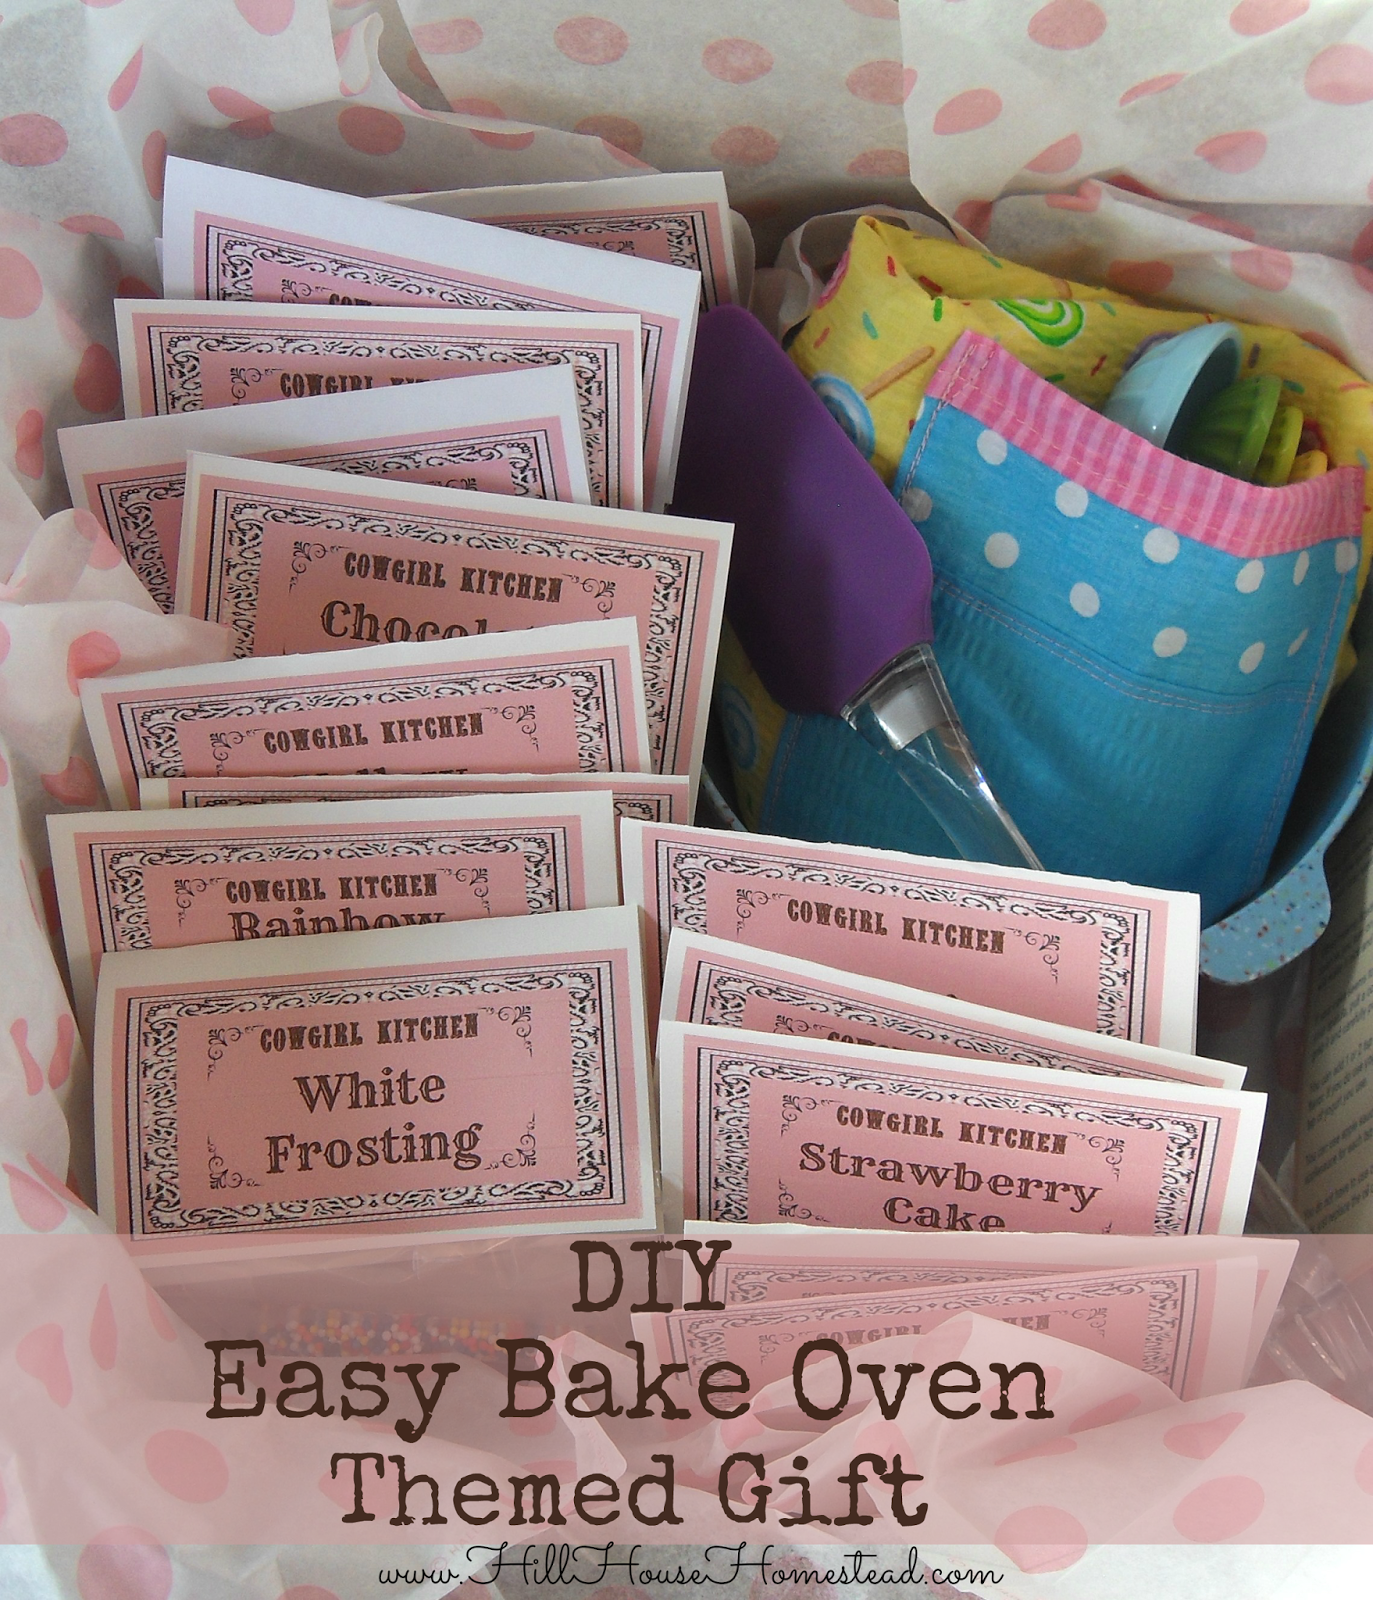 Homemade recipes for the easy bake oven